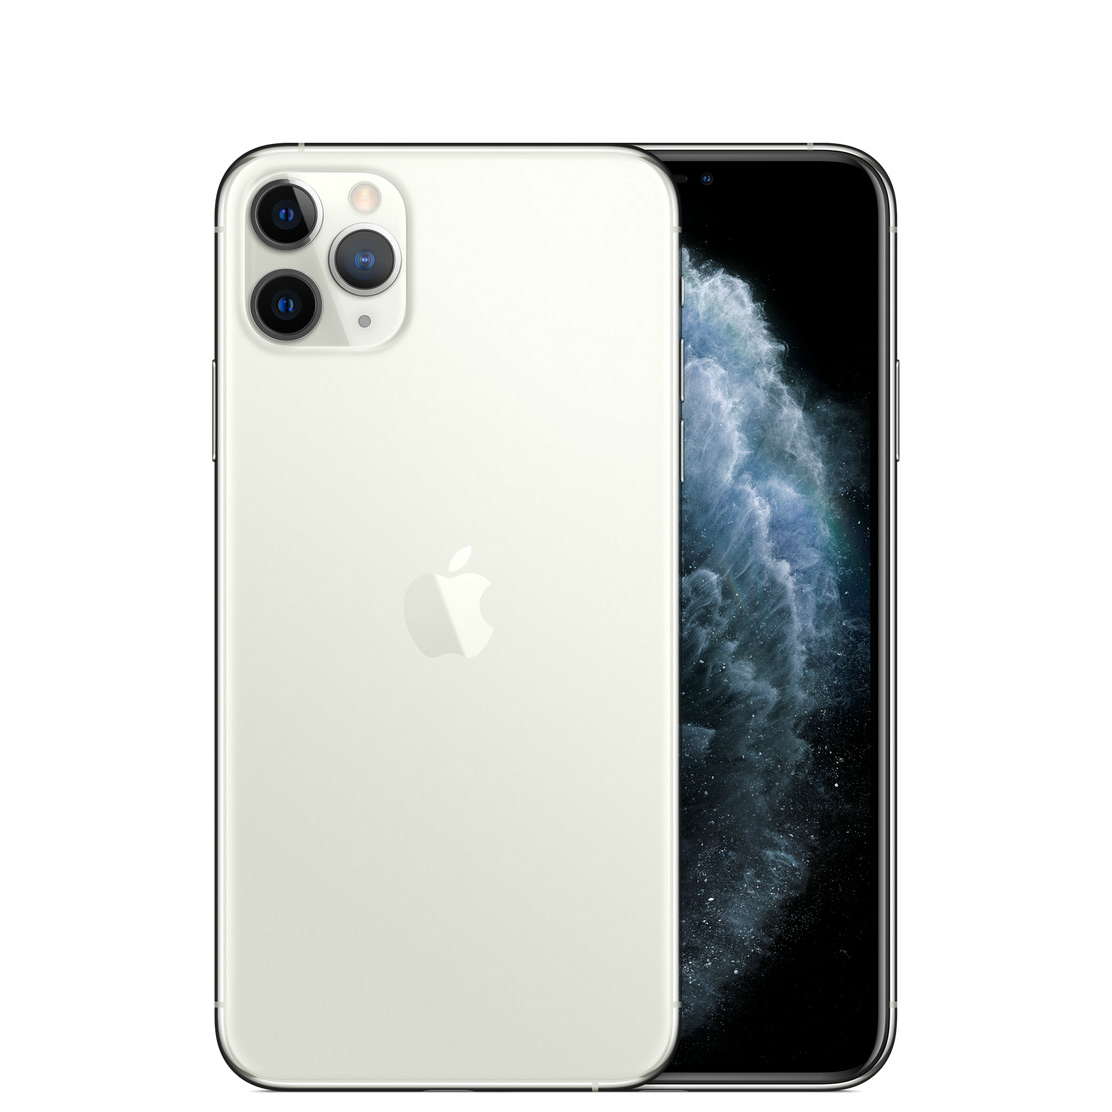 Image of Apple iPhone 11 Pro Max 64GB A2220 Dual Sim - Silver